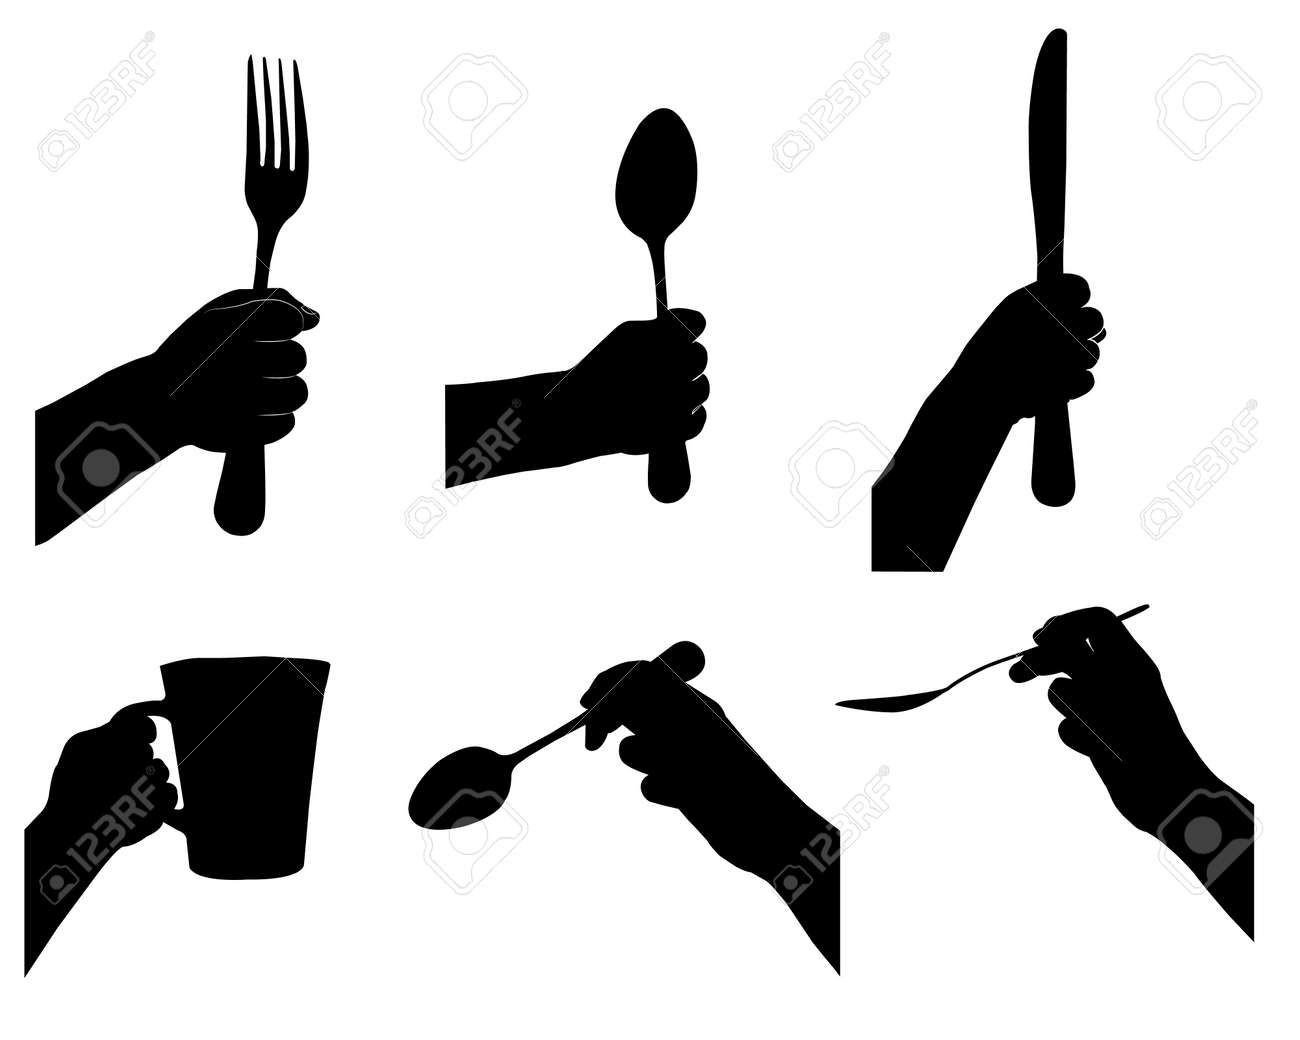 kitchen tools in hand silhouette vectors set royalty free cliparts rh 123rf com silhouette vector files free silhouette vector files free